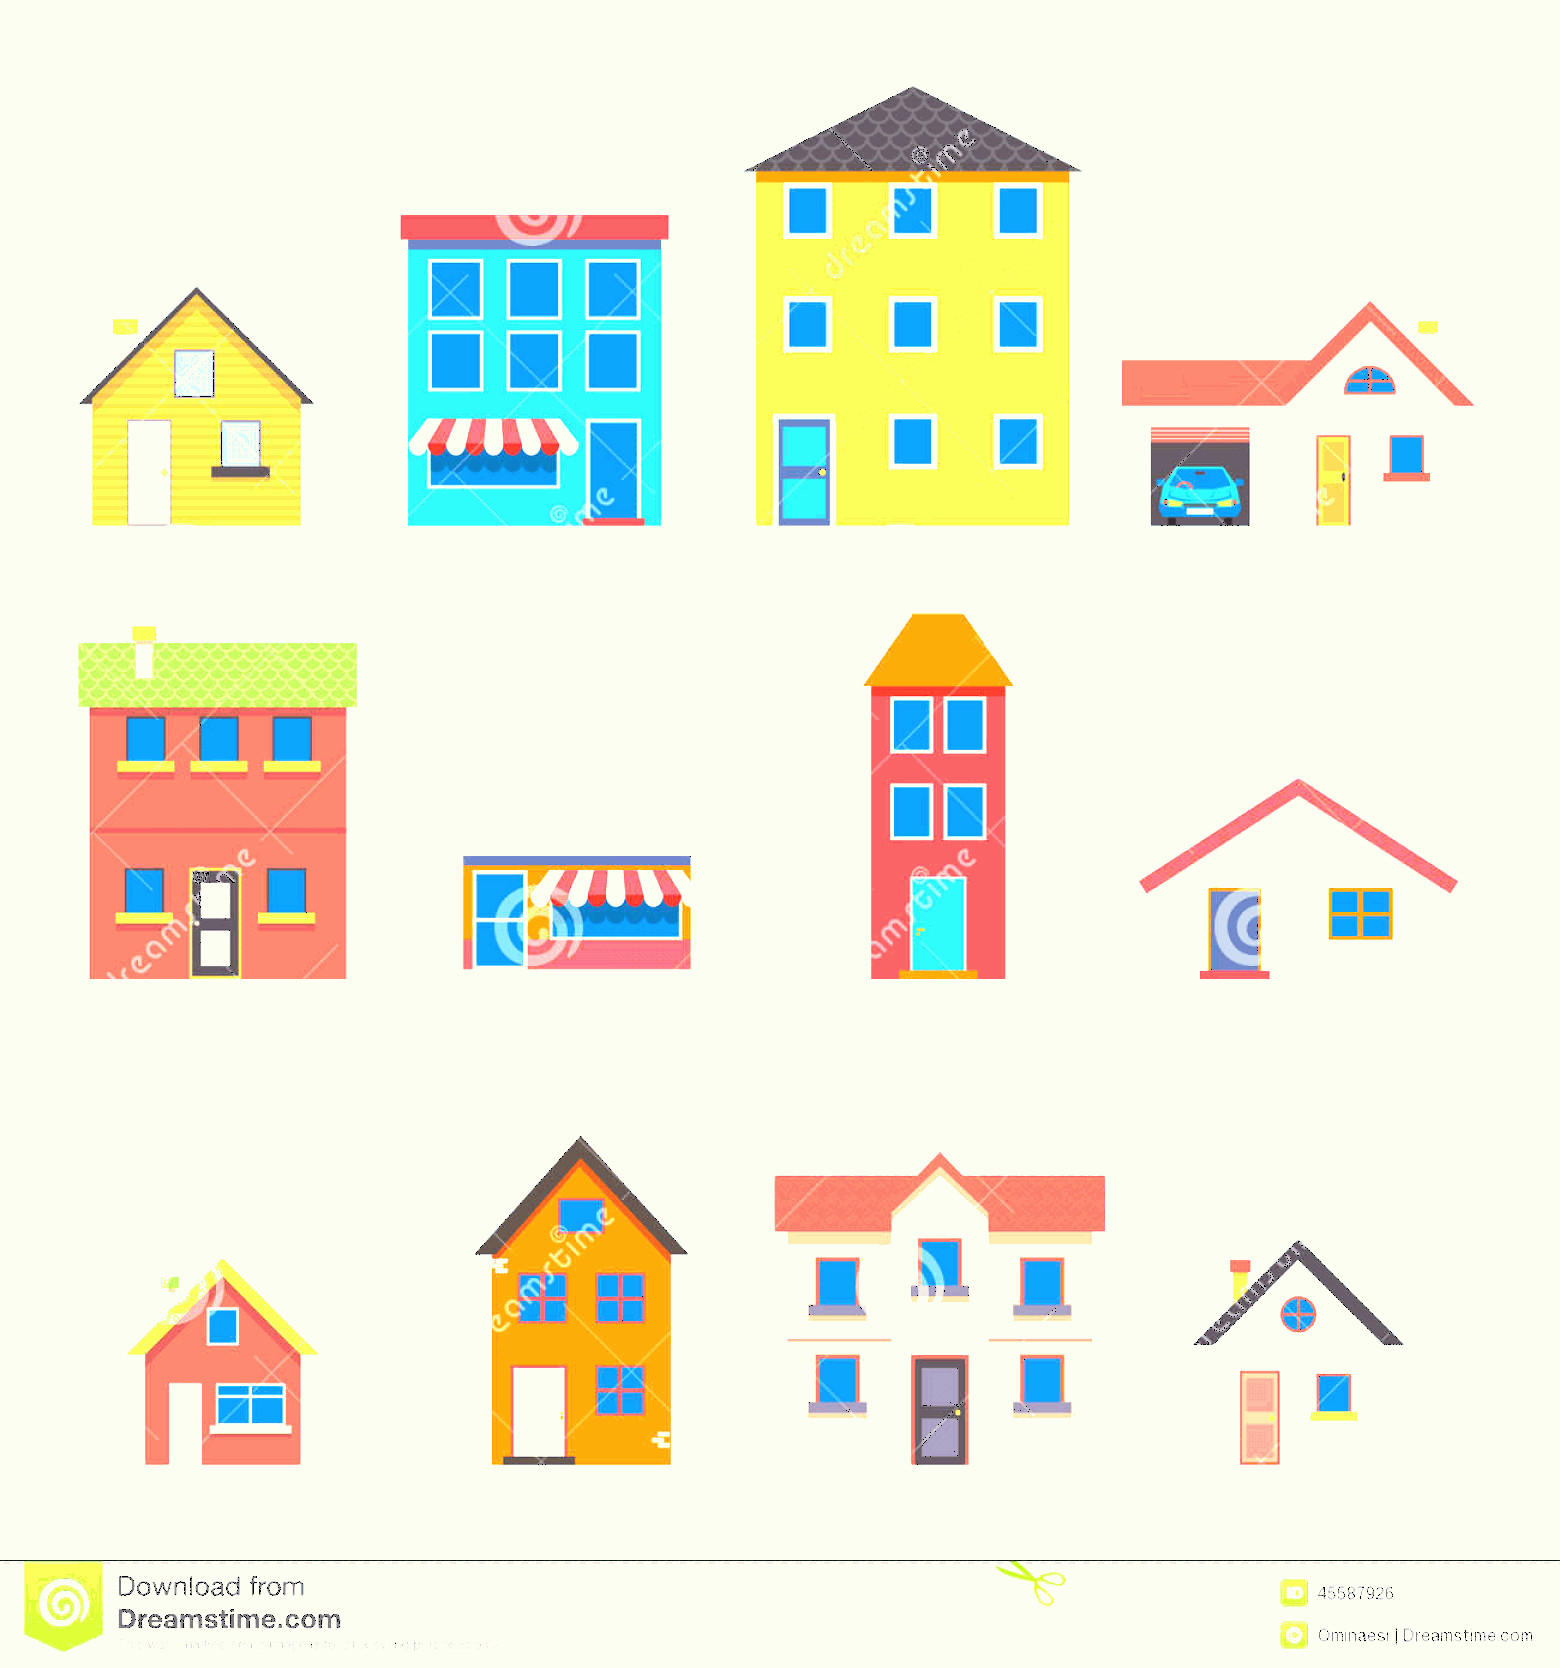 Flat Vector House: Stock Illustration Modern Trendy Retro House Street Flat Icons Set Vector Illustration Image